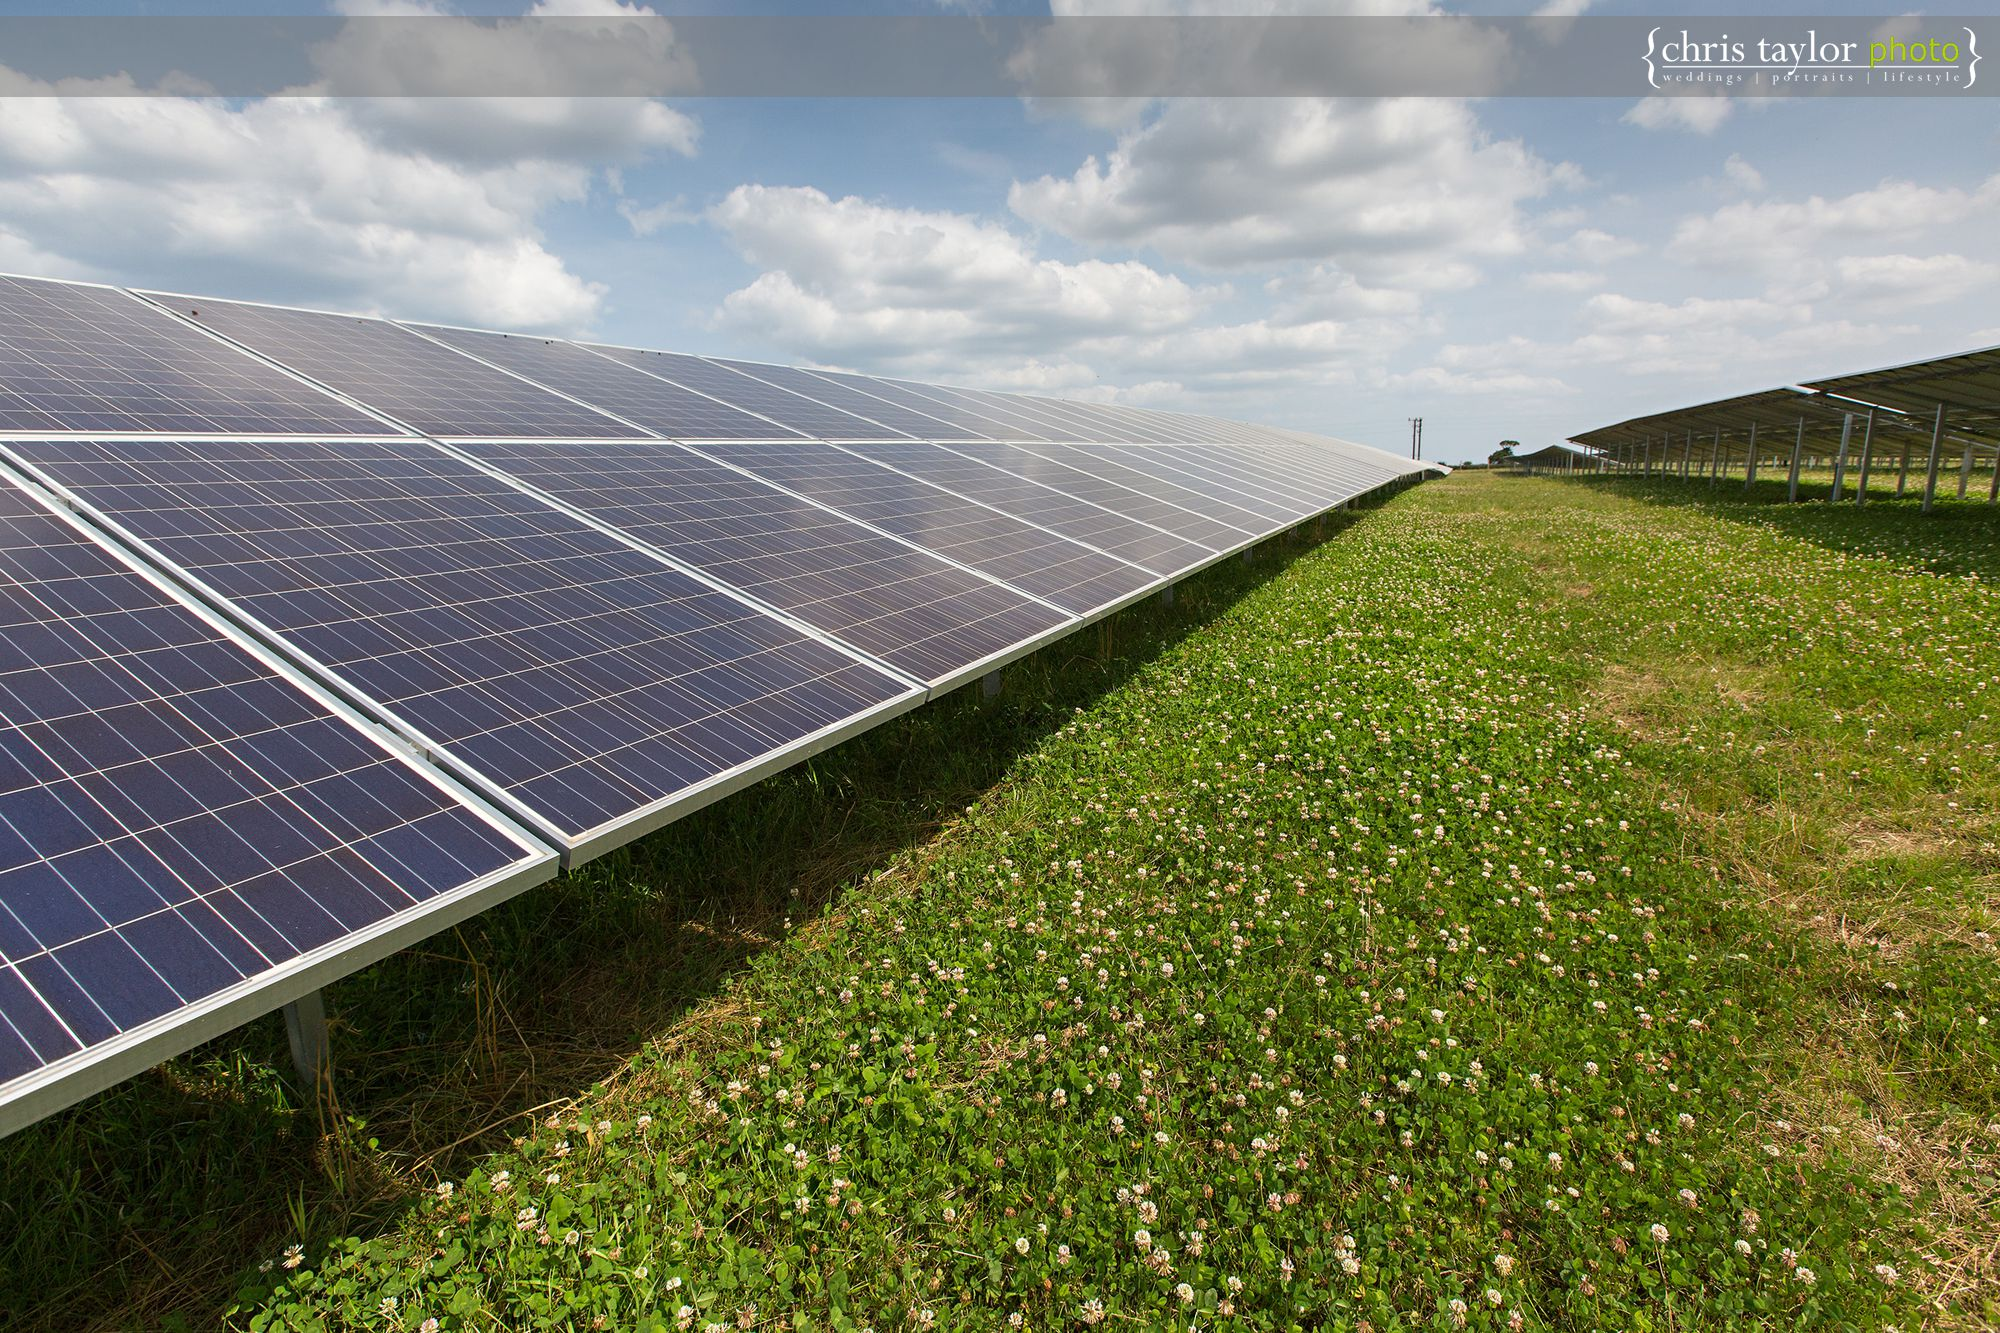 3-solar-farm-photography-003